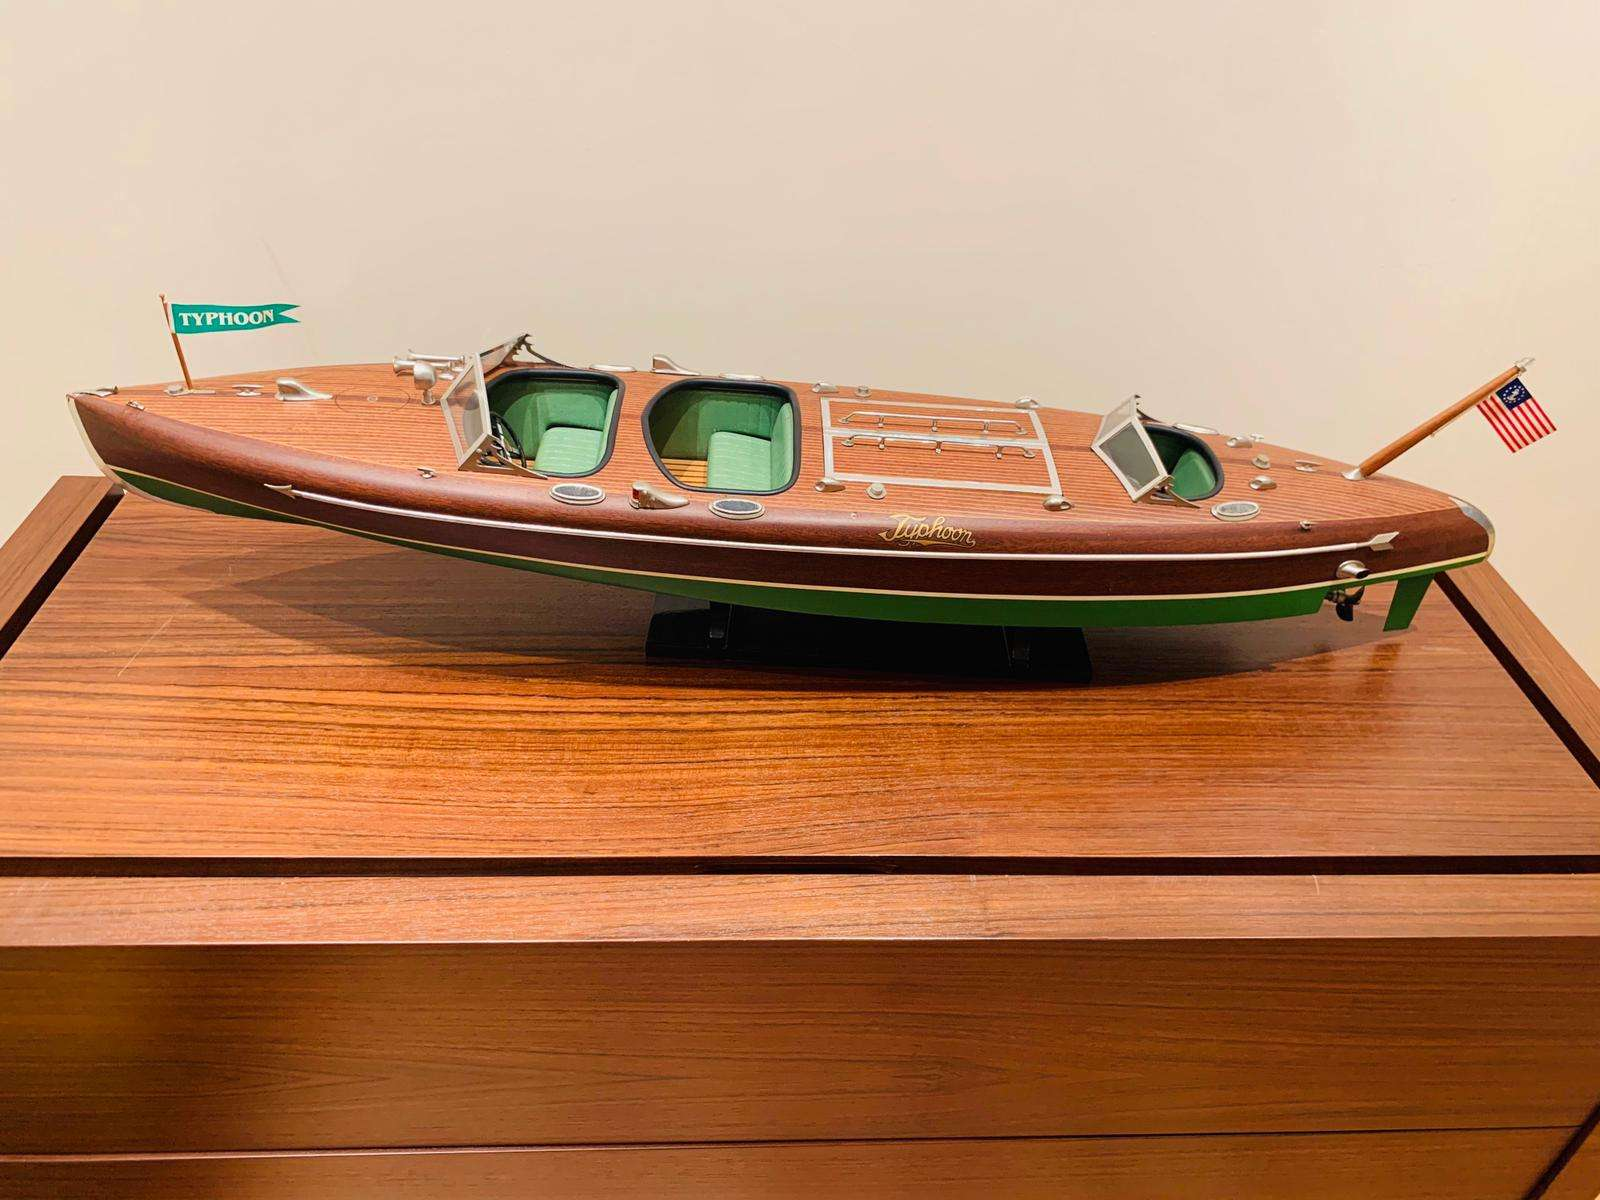 Typhoon Racing Boat Model